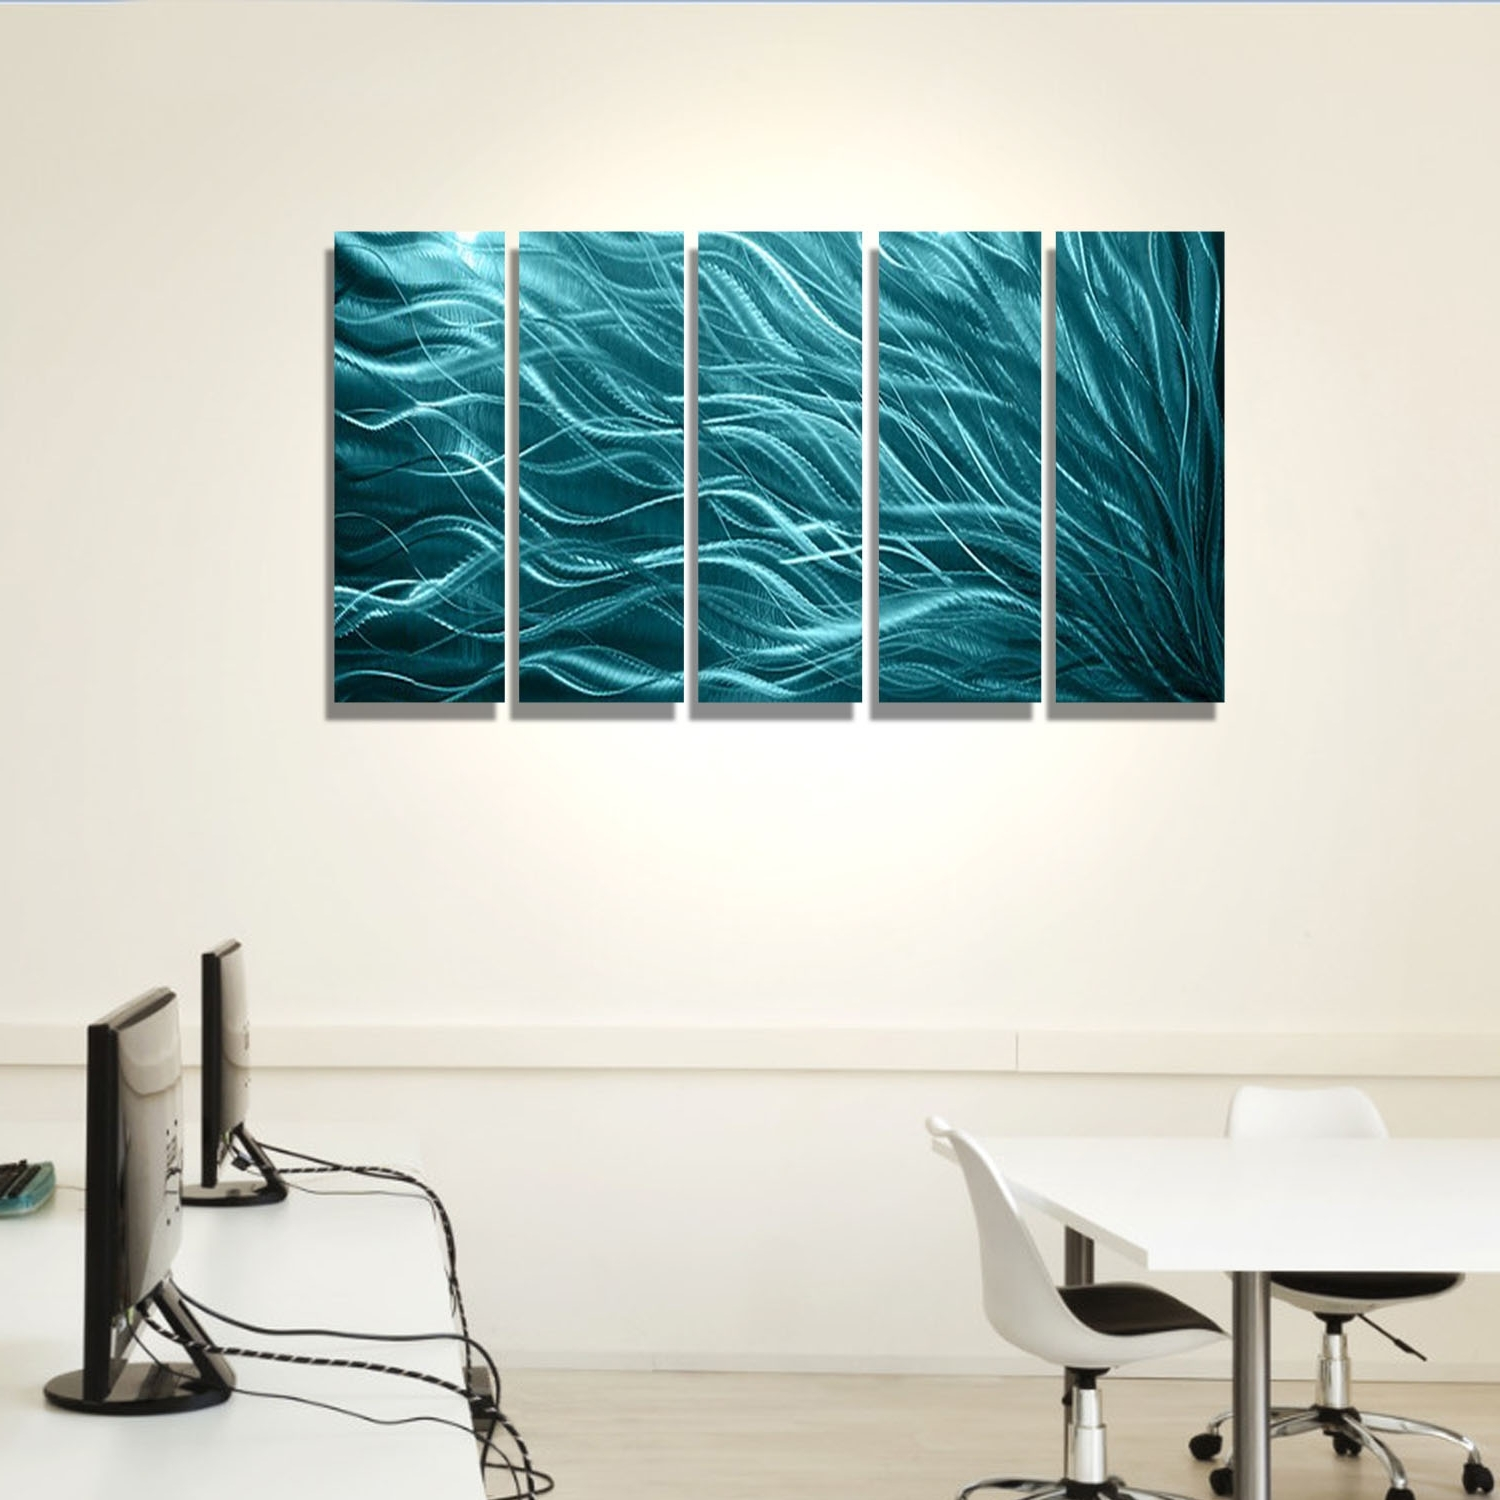 Well Known Teal Metal Wall Art In Aqua Sea Grass – Aqua Blue Metal Wall Art – 5 Panel Wall Décor (View 14 of 15)